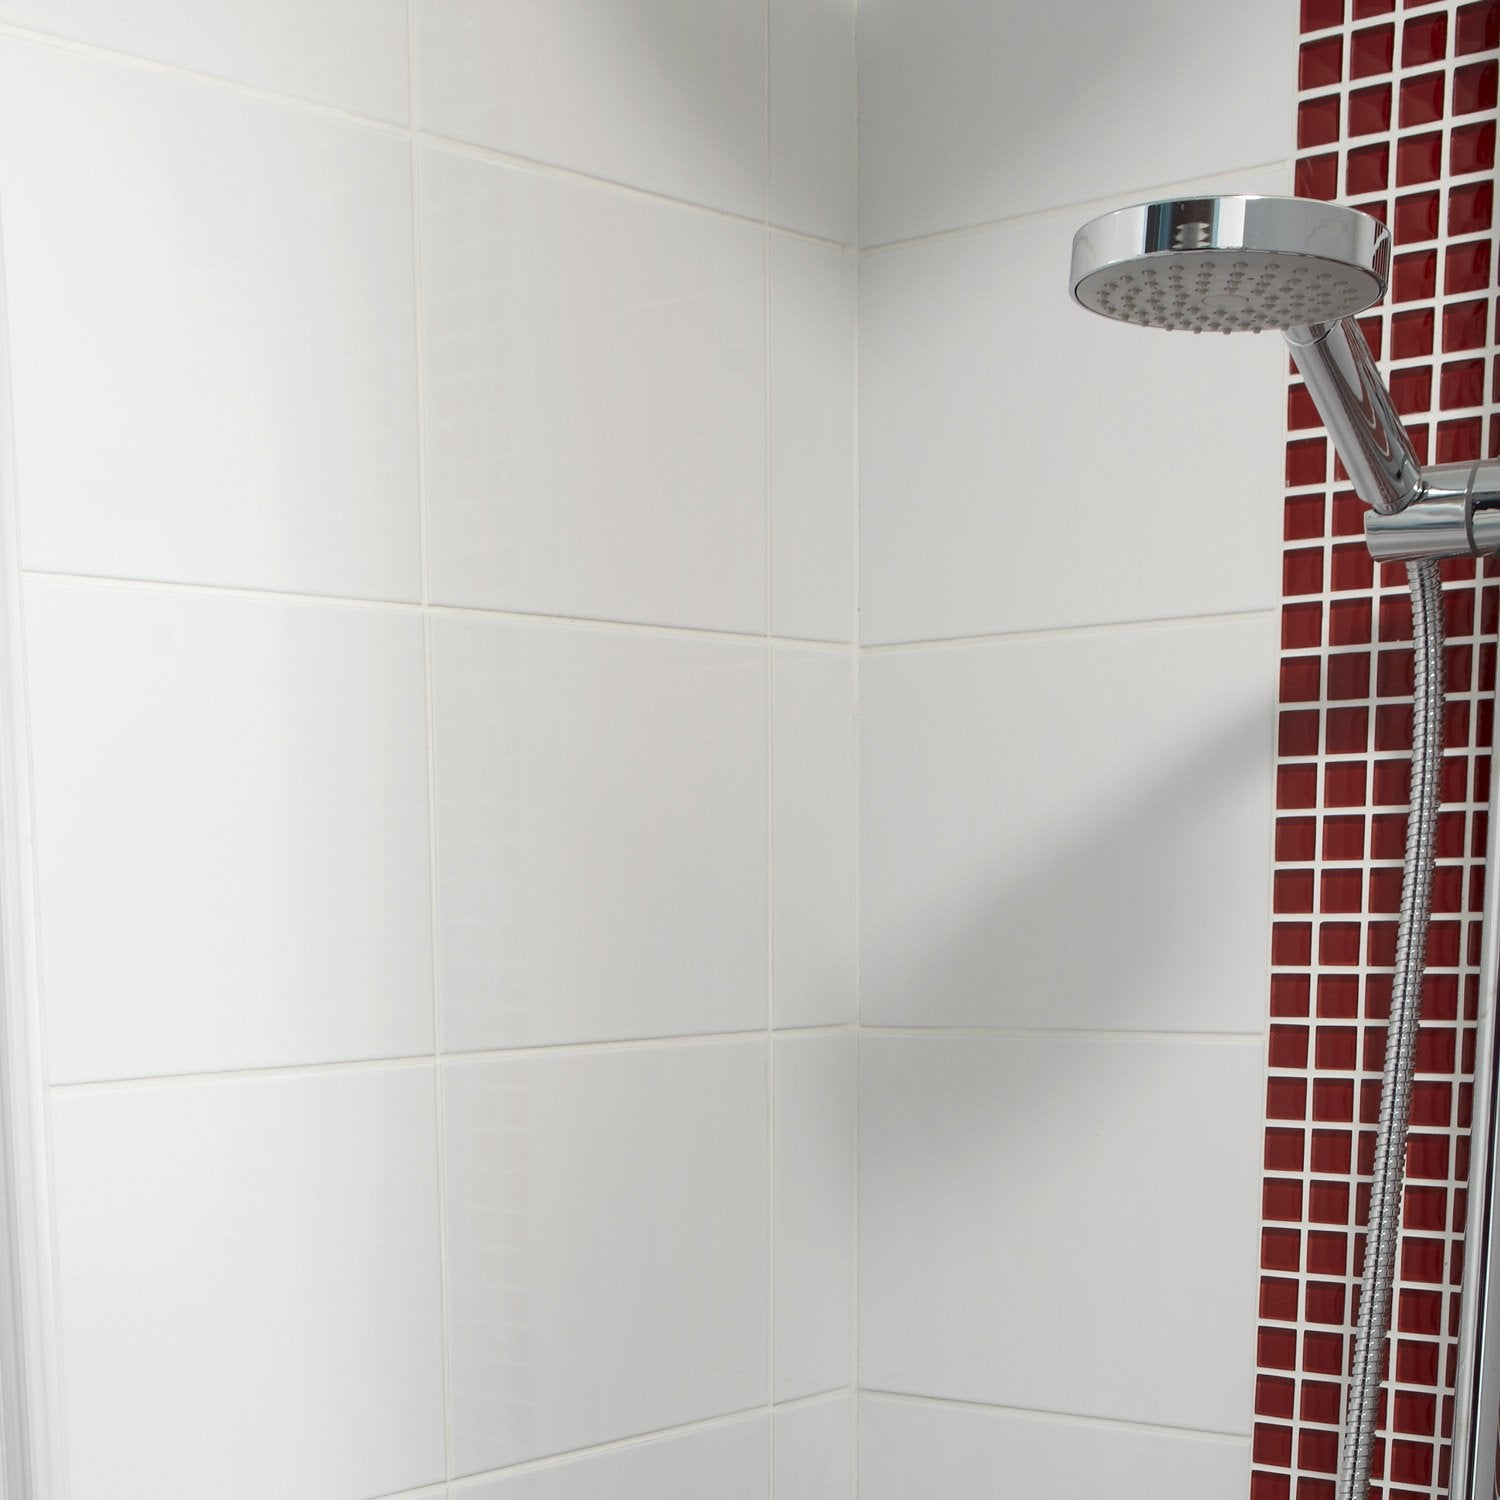 Carrelage salle de bain 20 x 20 for Faience mur